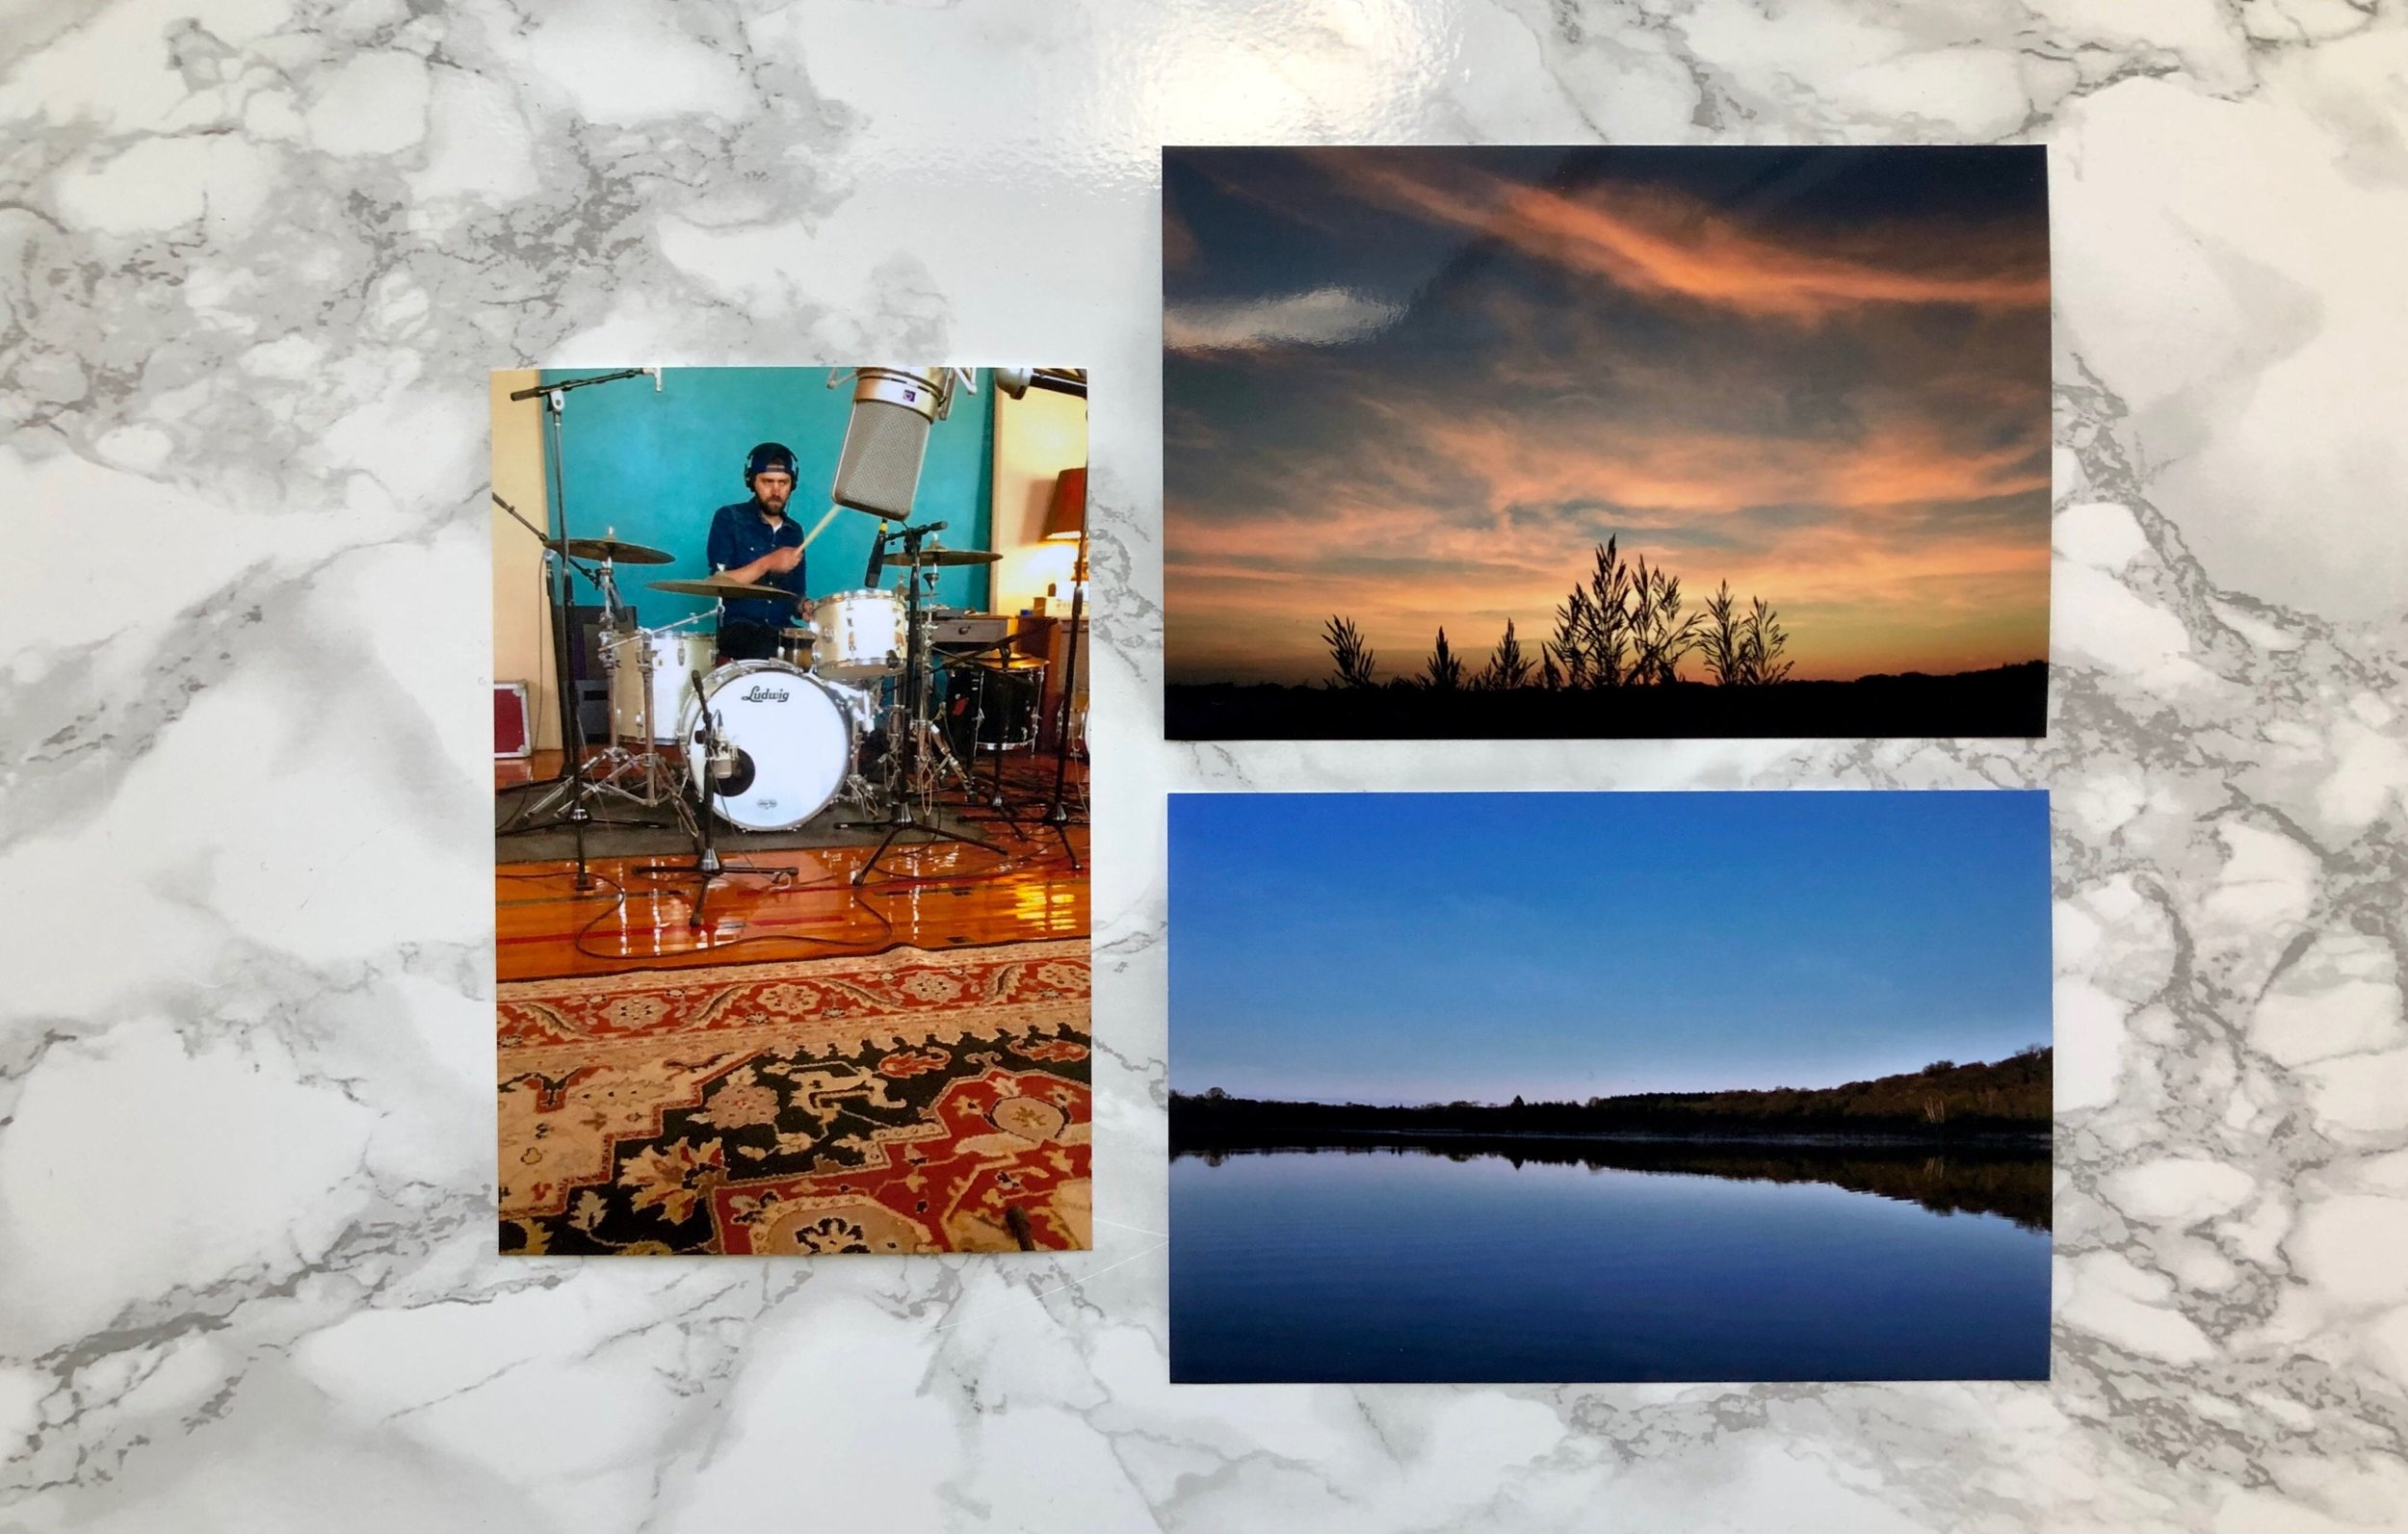 4x6 photo prints direct from the FOREVER Print Shop.